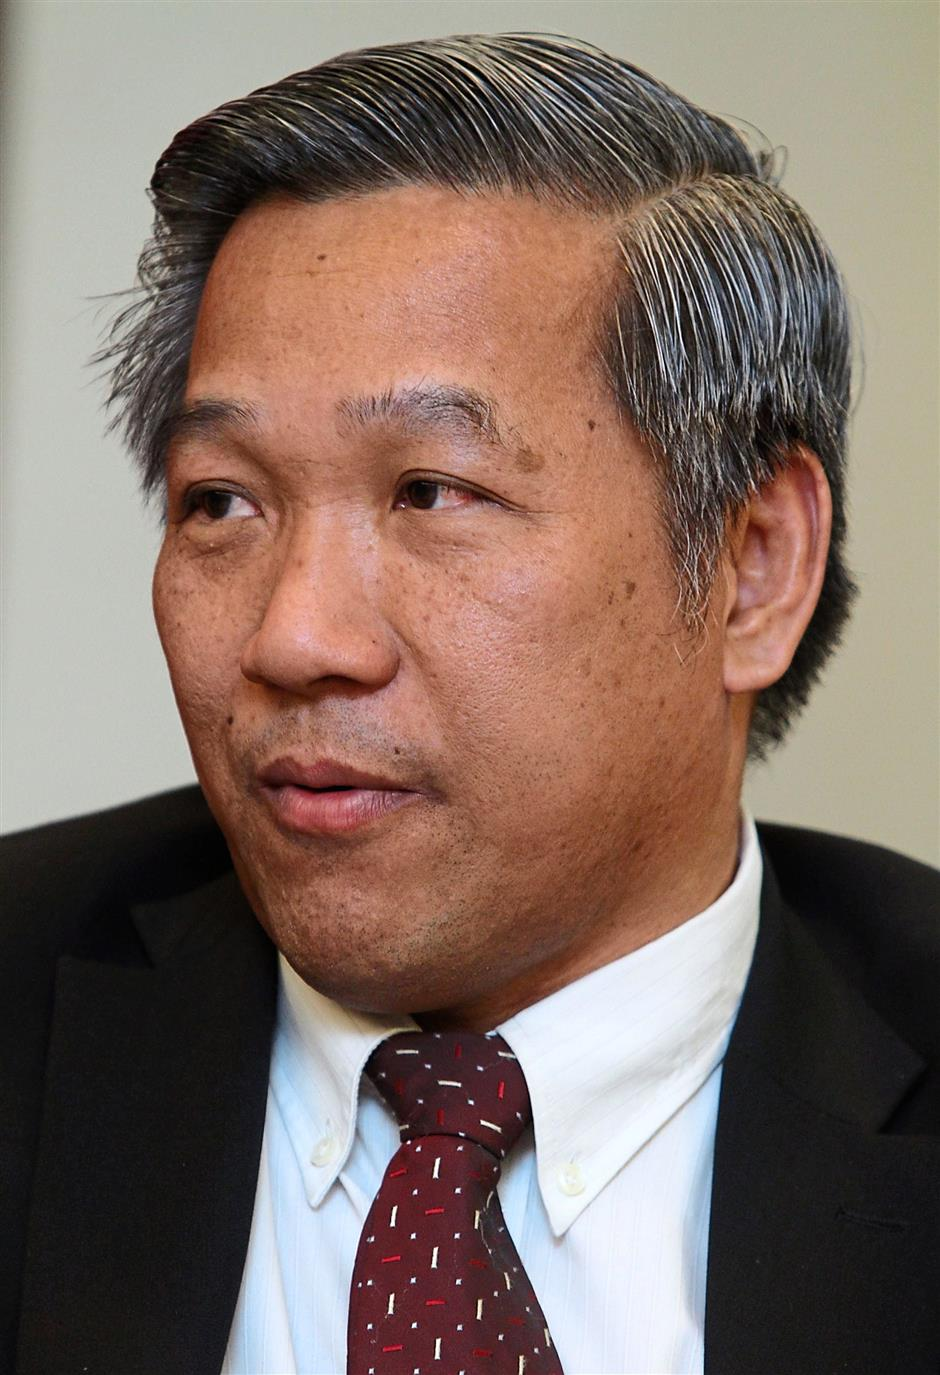 SMEs with annual turnover of less than RM10mil will have to lift their game or perish, says Kang.